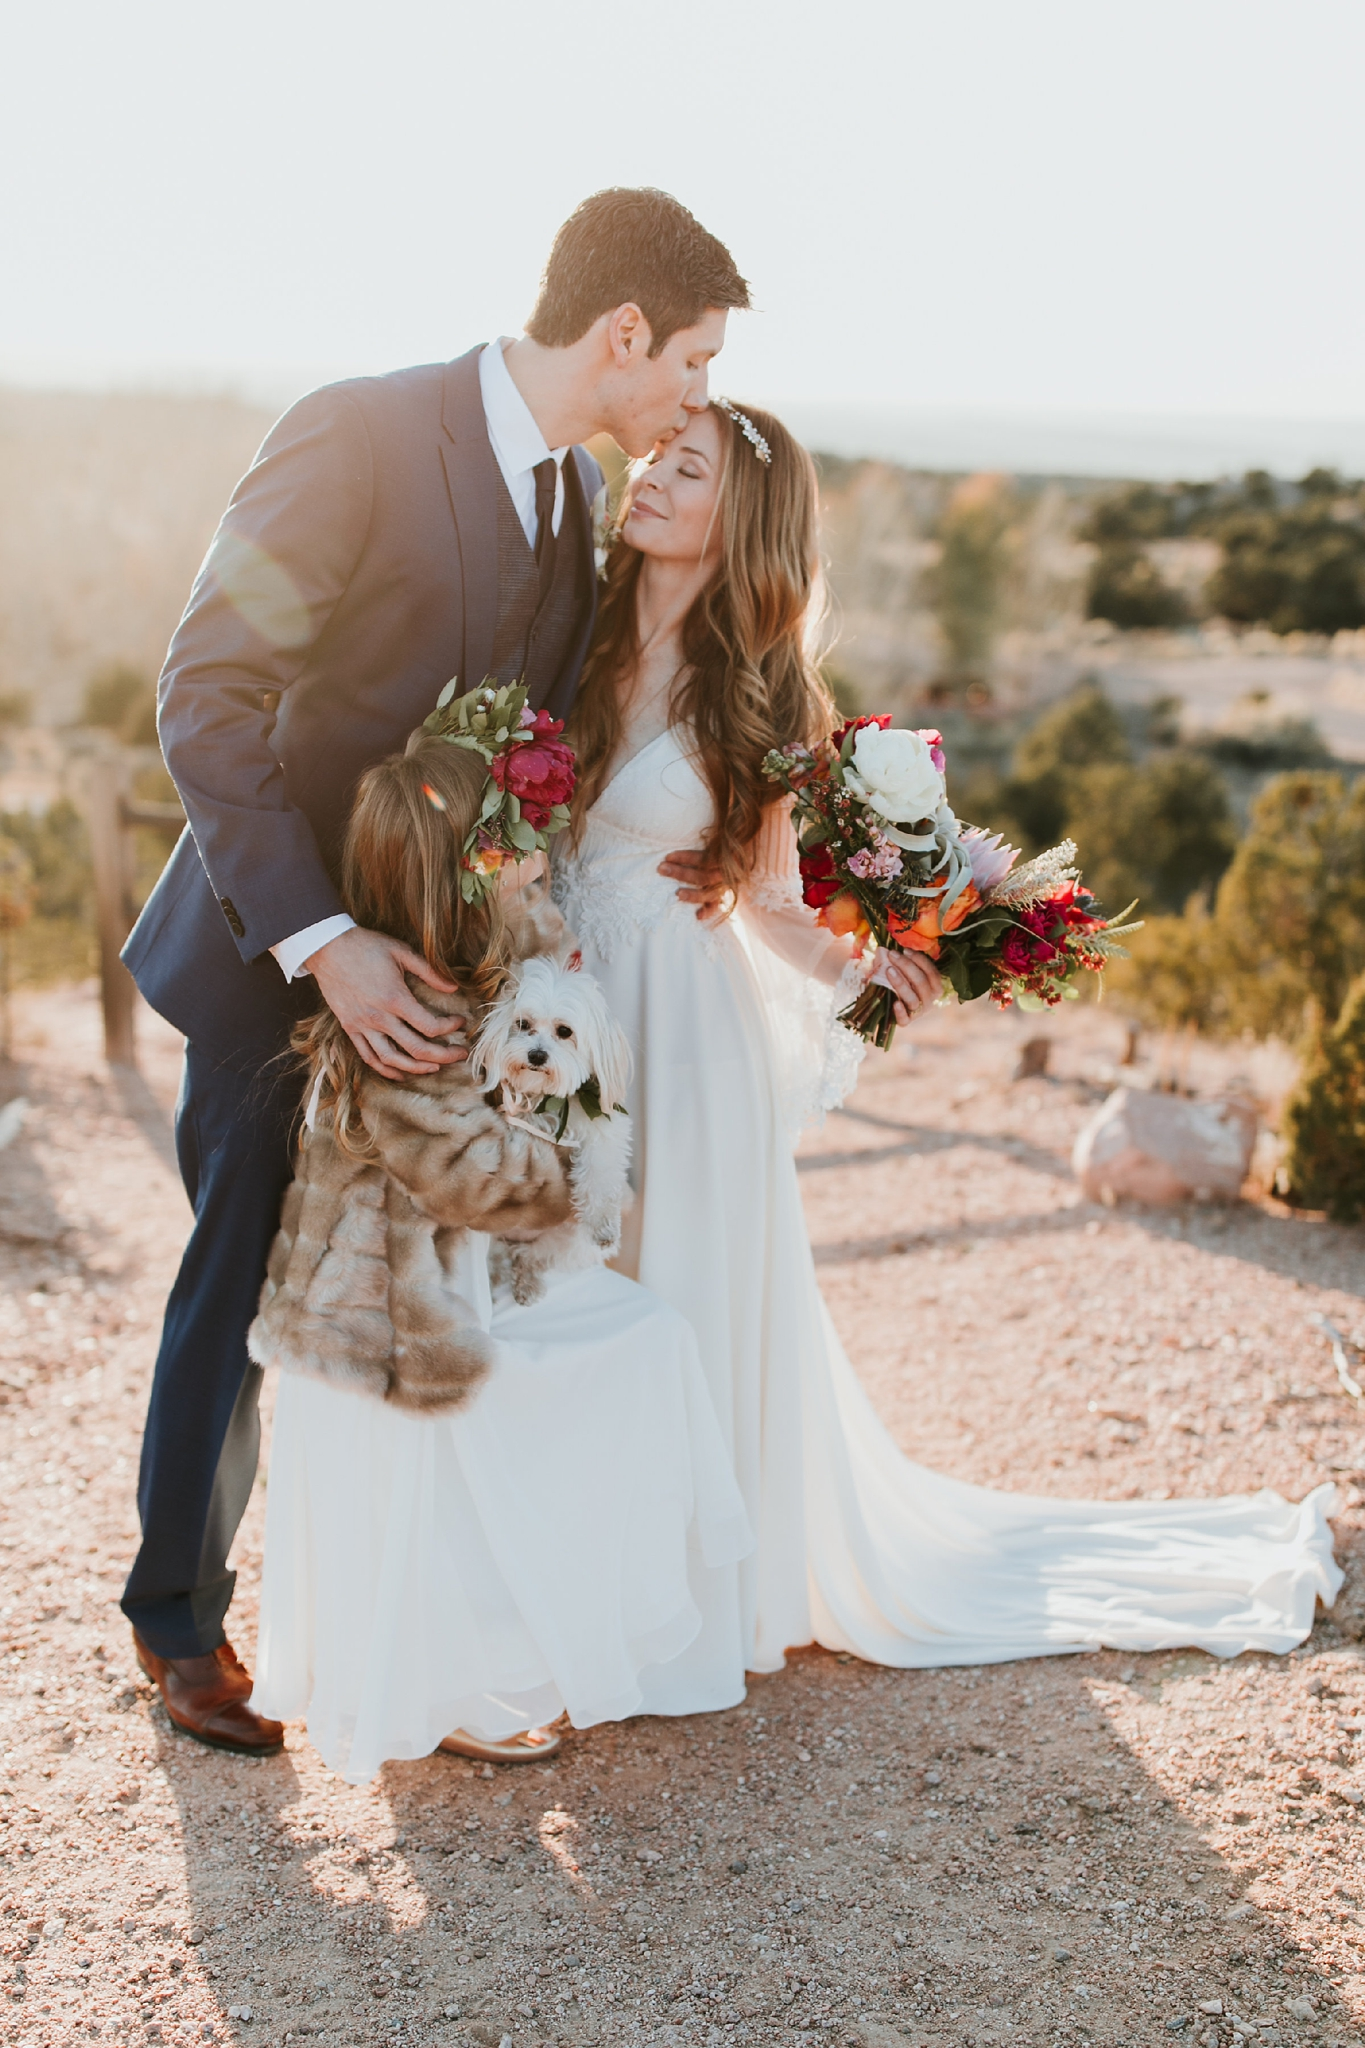 Alicia+lucia+photography+-+albuquerque+wedding+photographer+-+santa+fe+wedding+photography+-+new+mexico+wedding+photographer+-+new+mexico+wedding+-+wedding+gowns+-+bridal+gowns+-+a+line+wedding+gown_0042.jpg